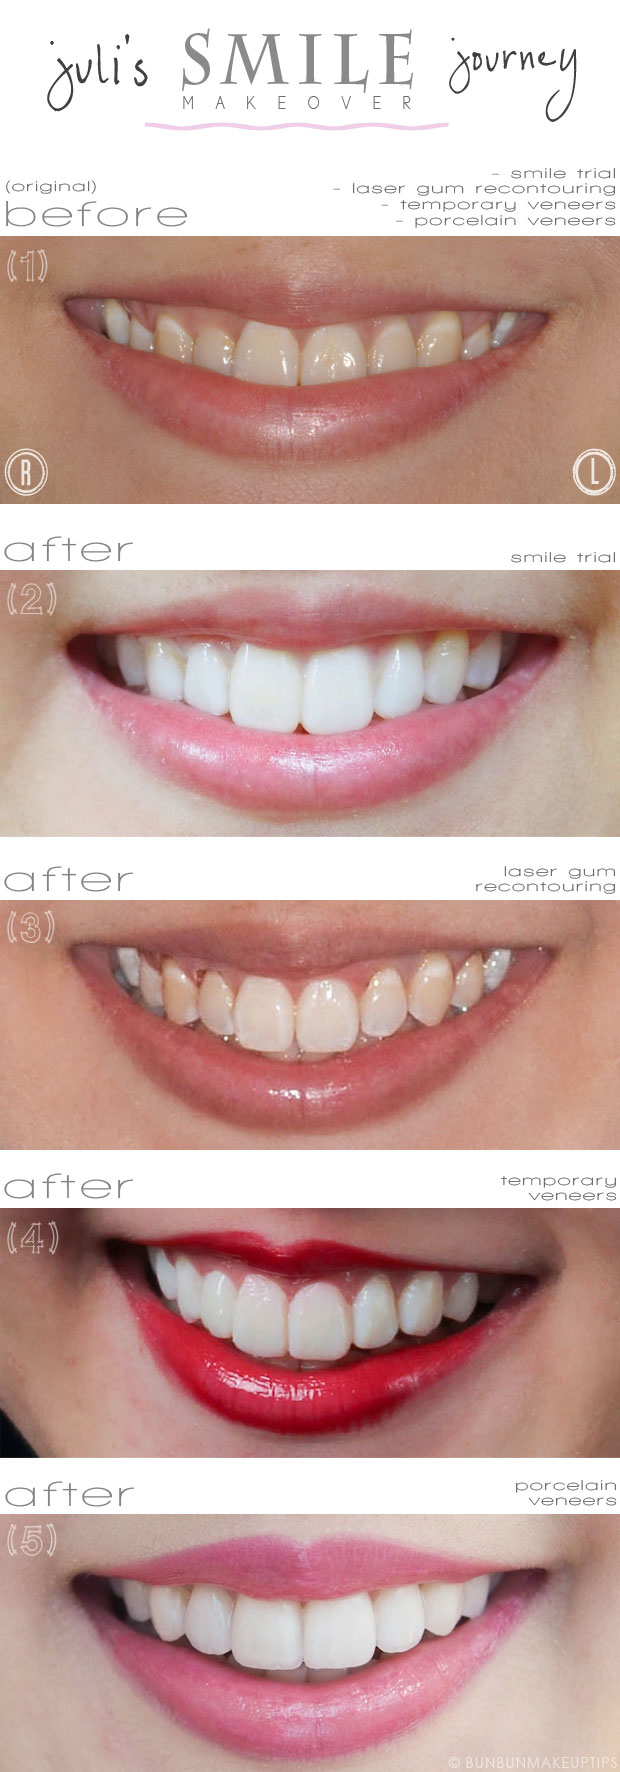 final smile makeover review